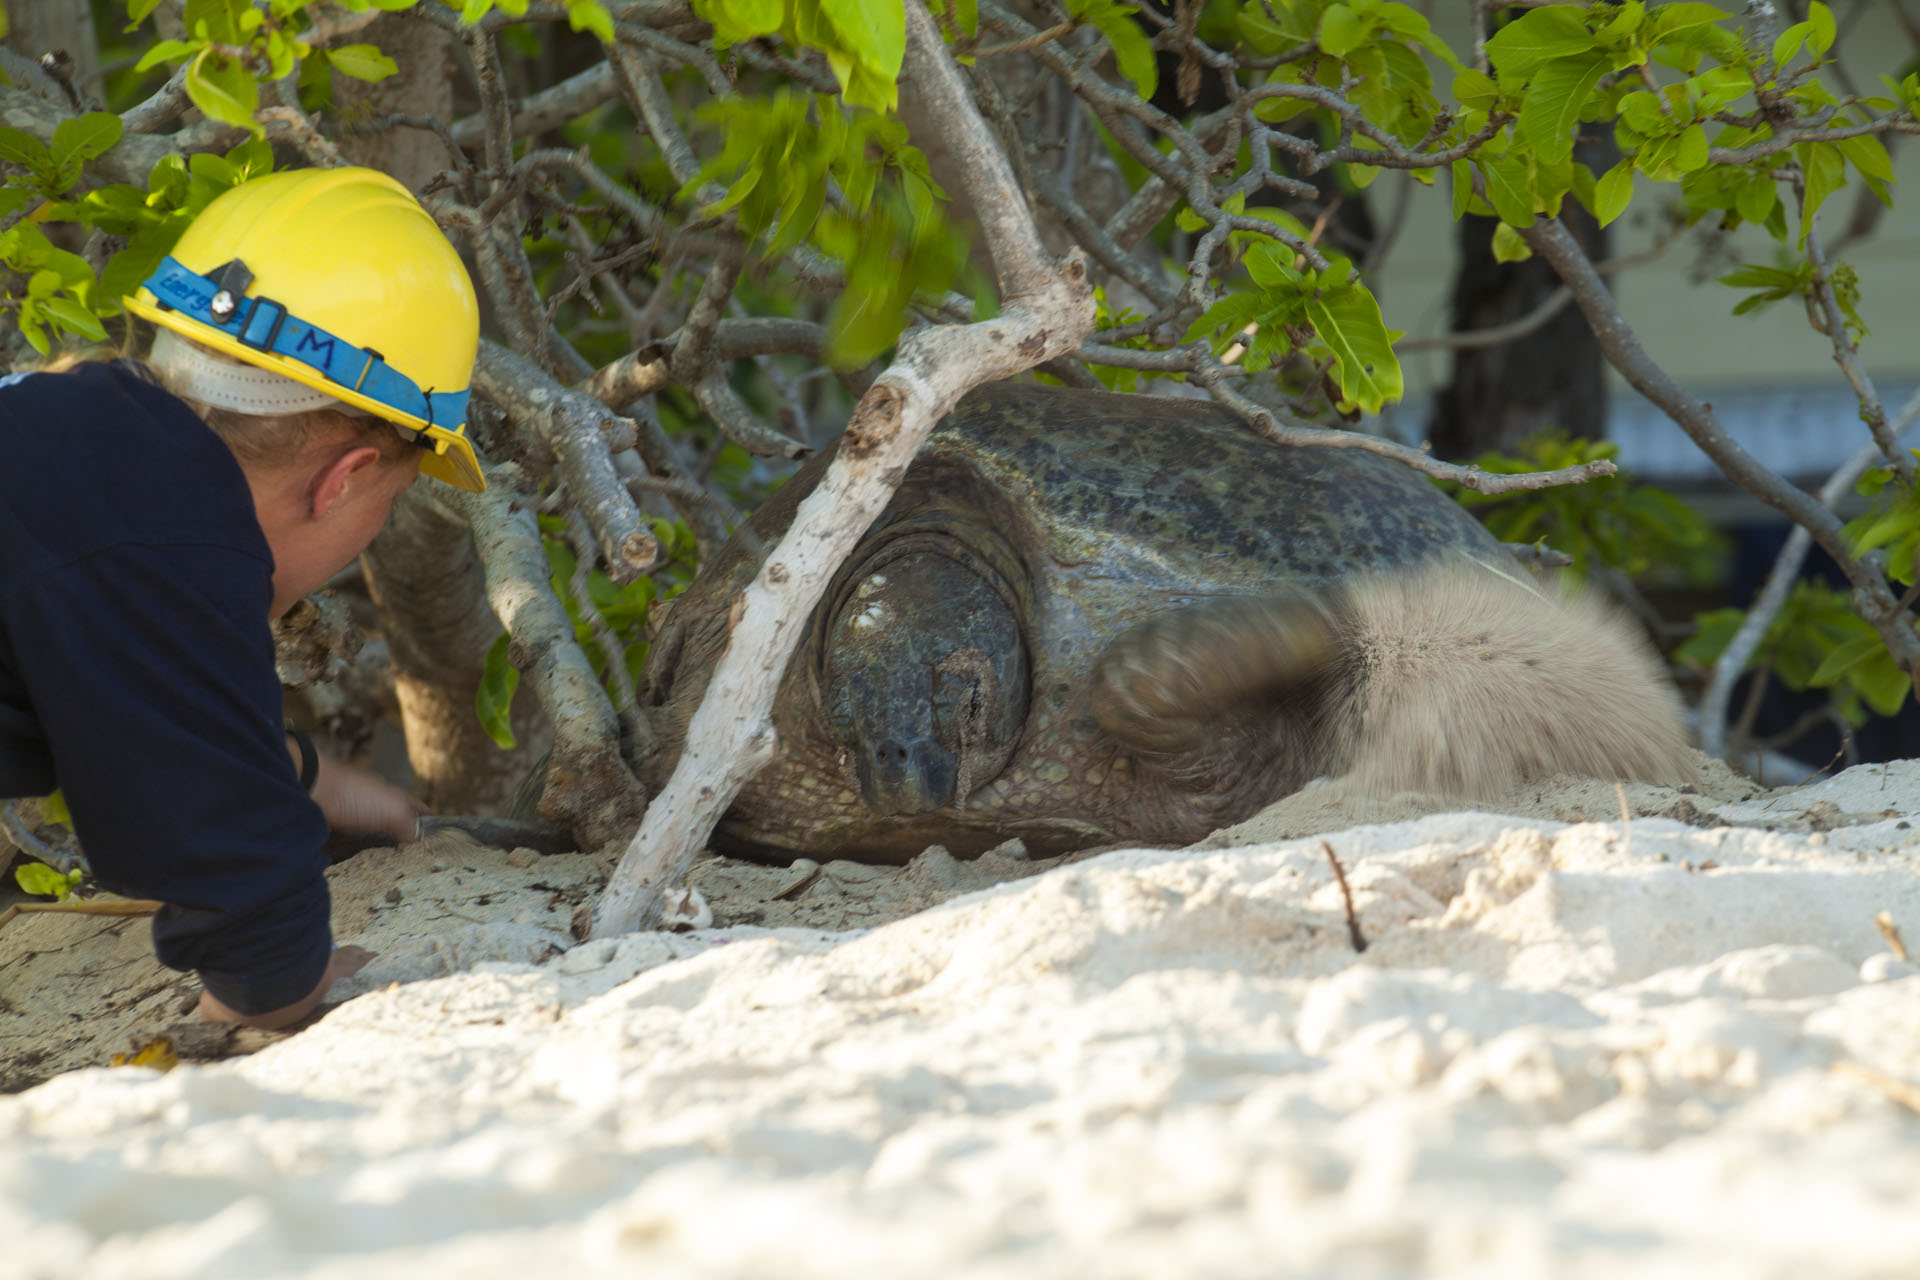 A Queensland government turtle conservation officer checks the turtle's flipper band. Identifying individuals has helped them understand the population biology in detail so they have the data to issue early warnings if there is any cause for alarm.